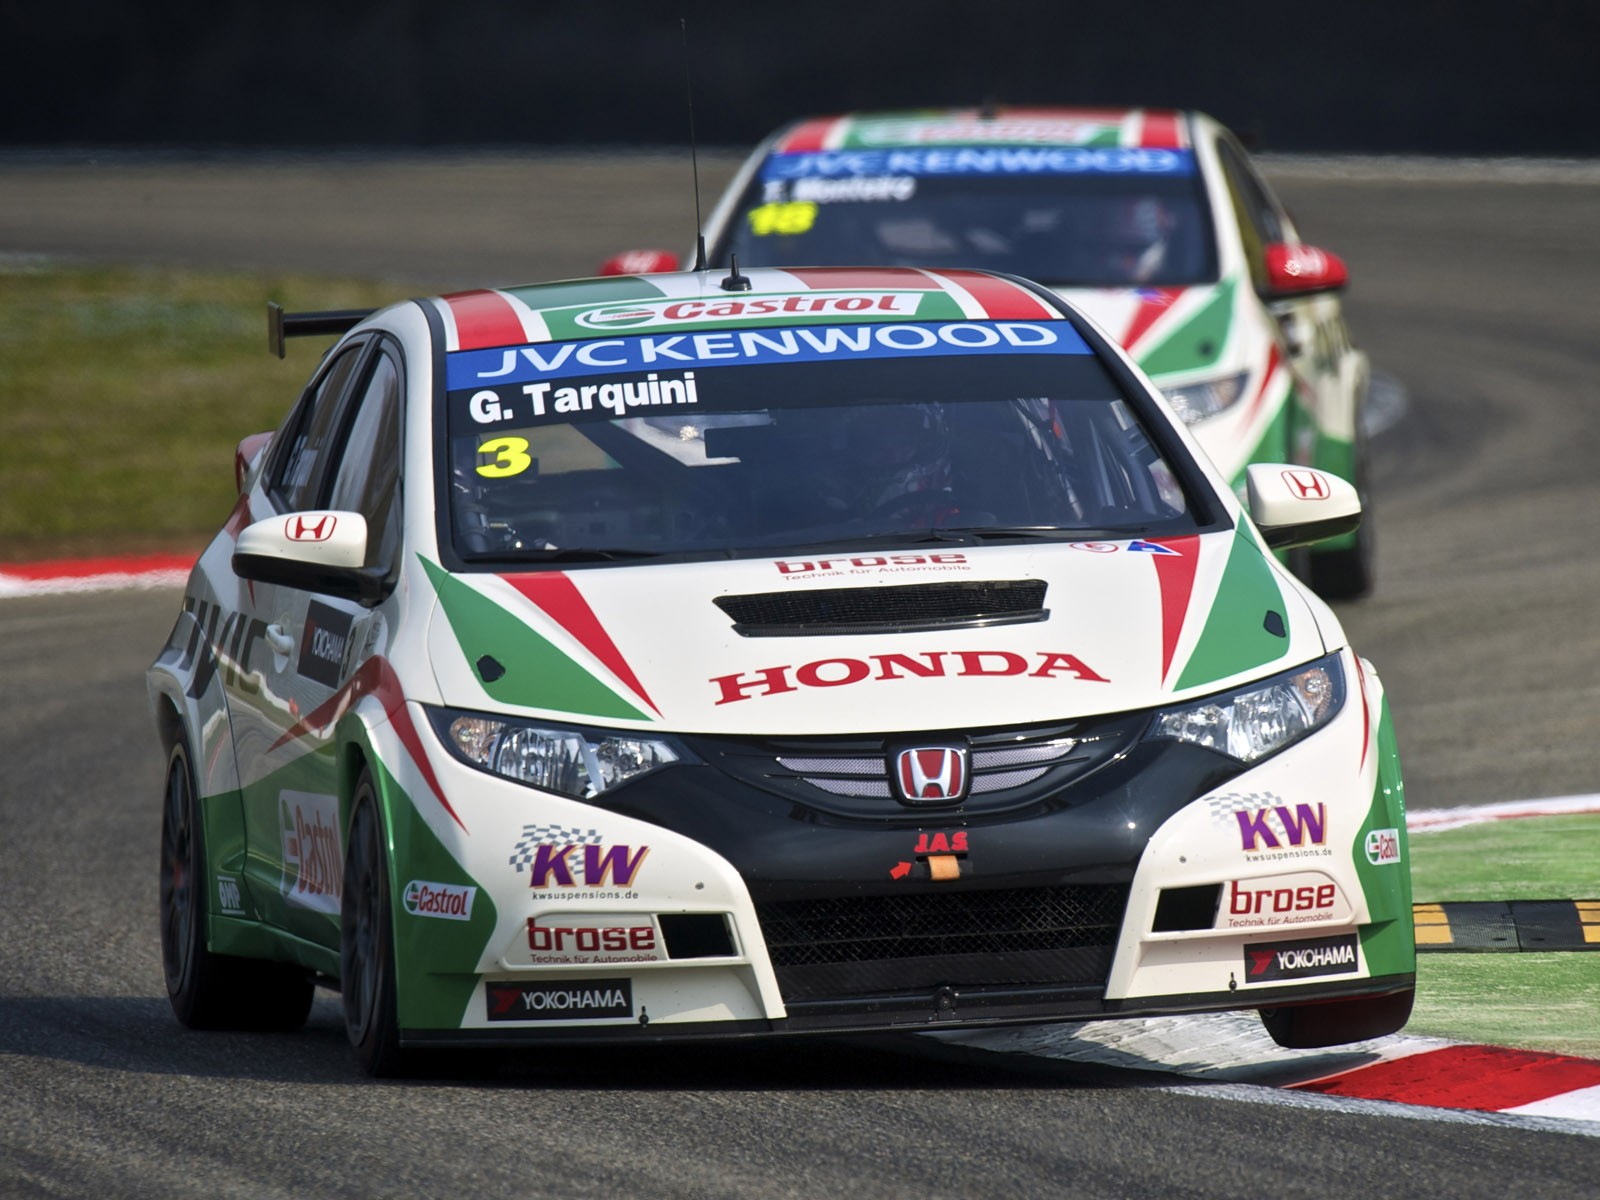 2013 Honda Civic WTCC